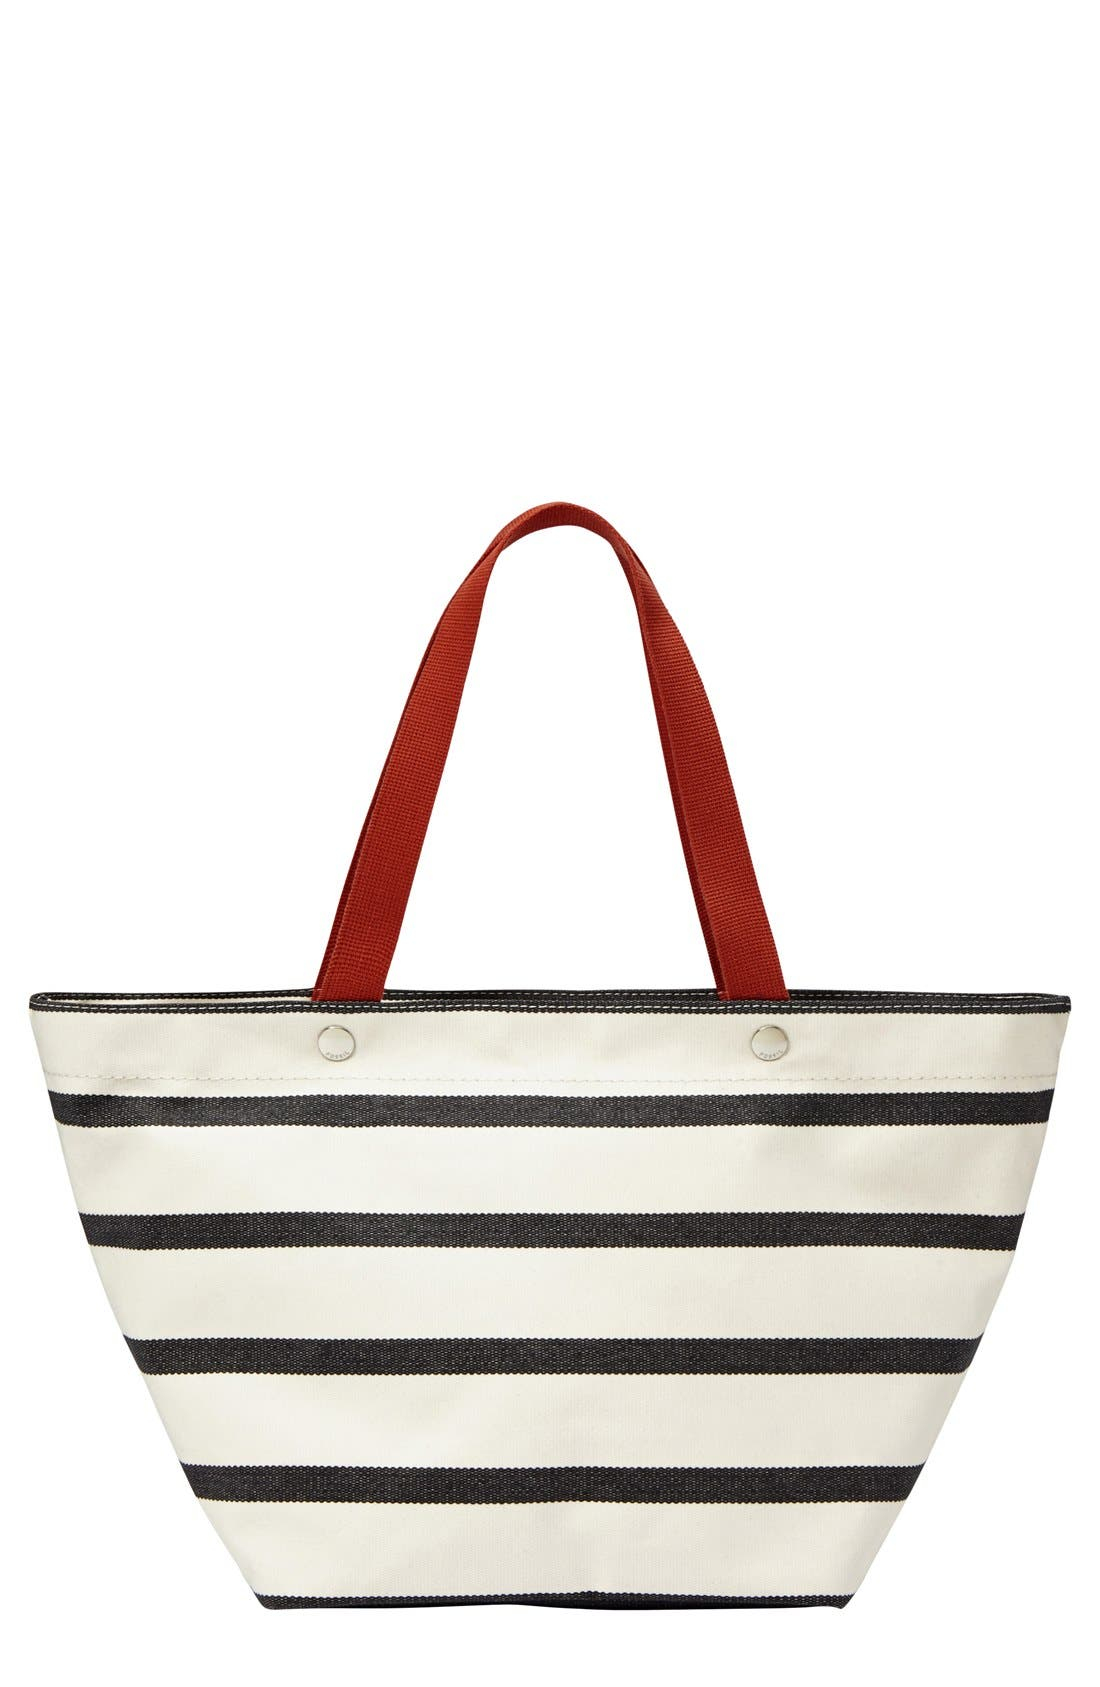 Main Image - Fossil 'East/West Keeper' Beach Tote